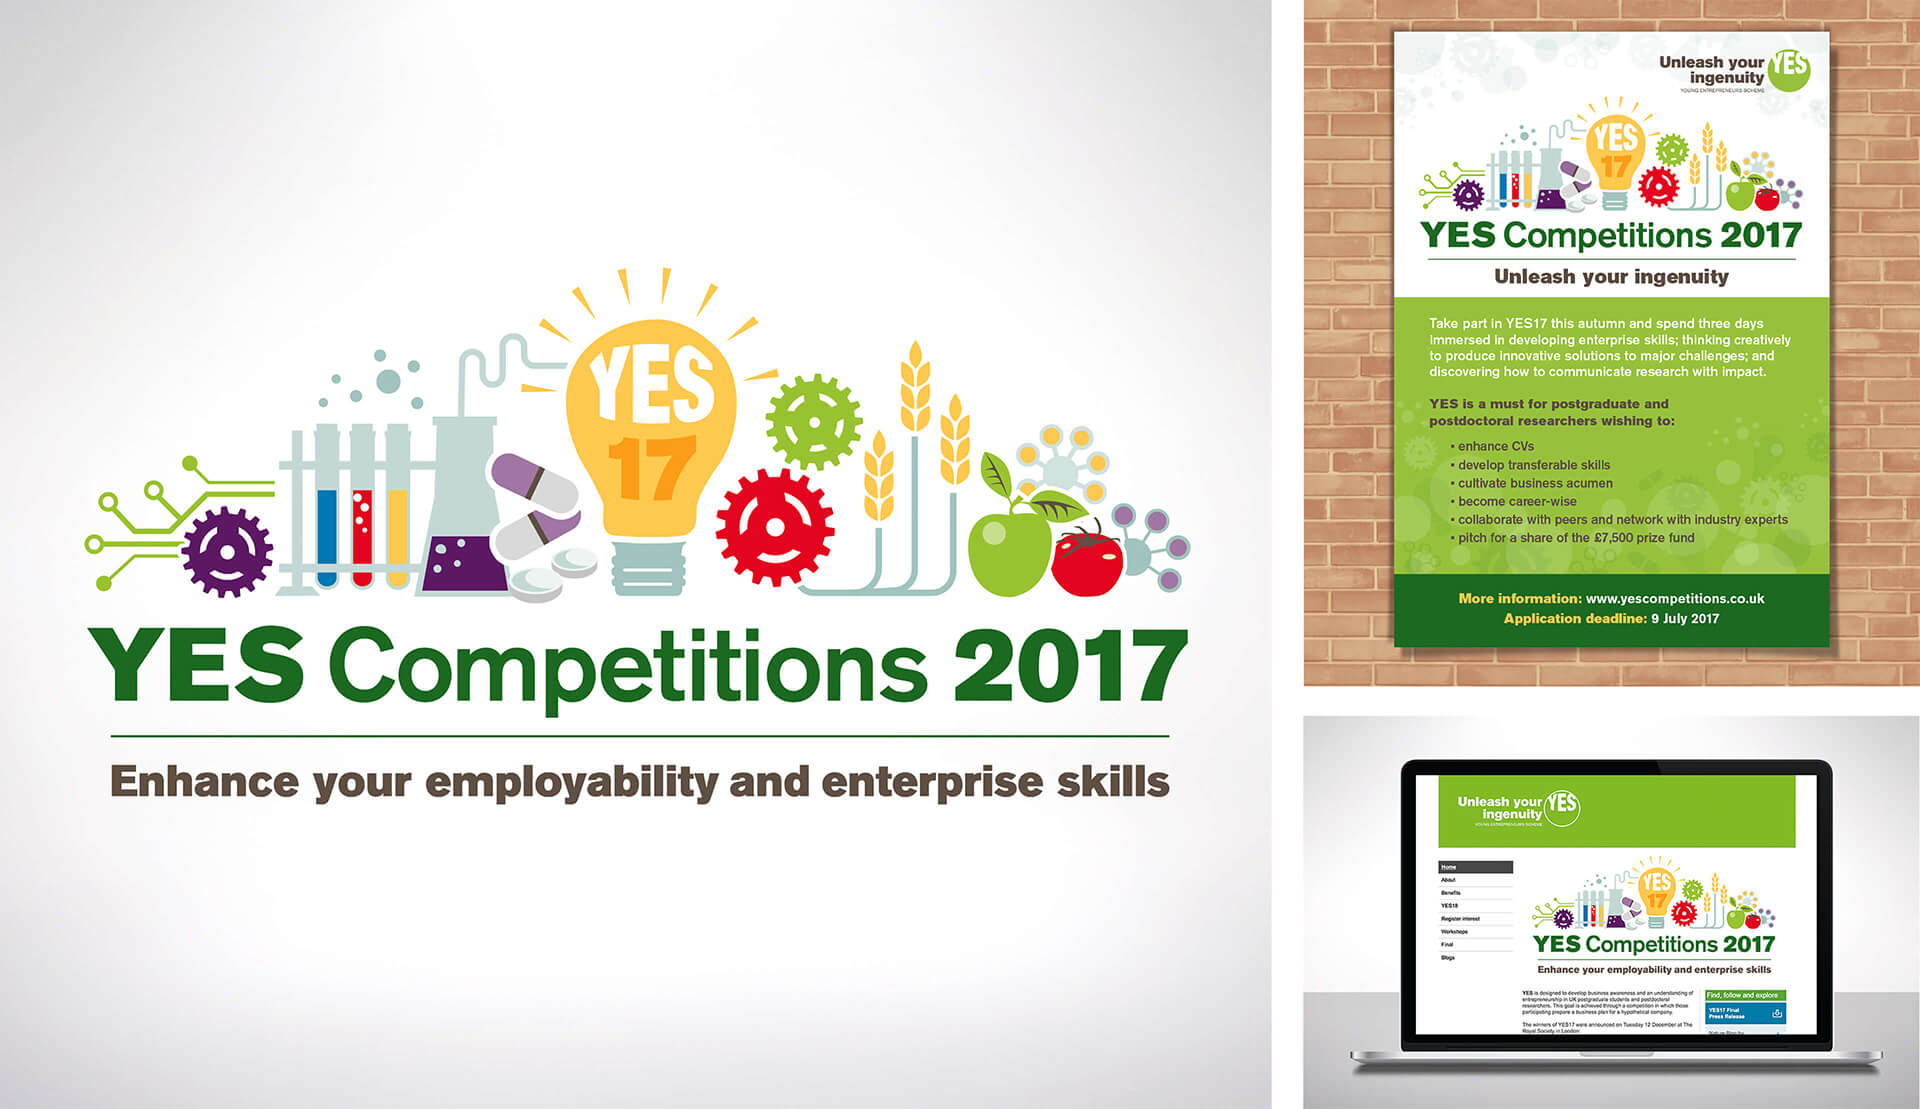 THE UNIVERSITY OF NOTTINGHAM / YES COMPETITIONS